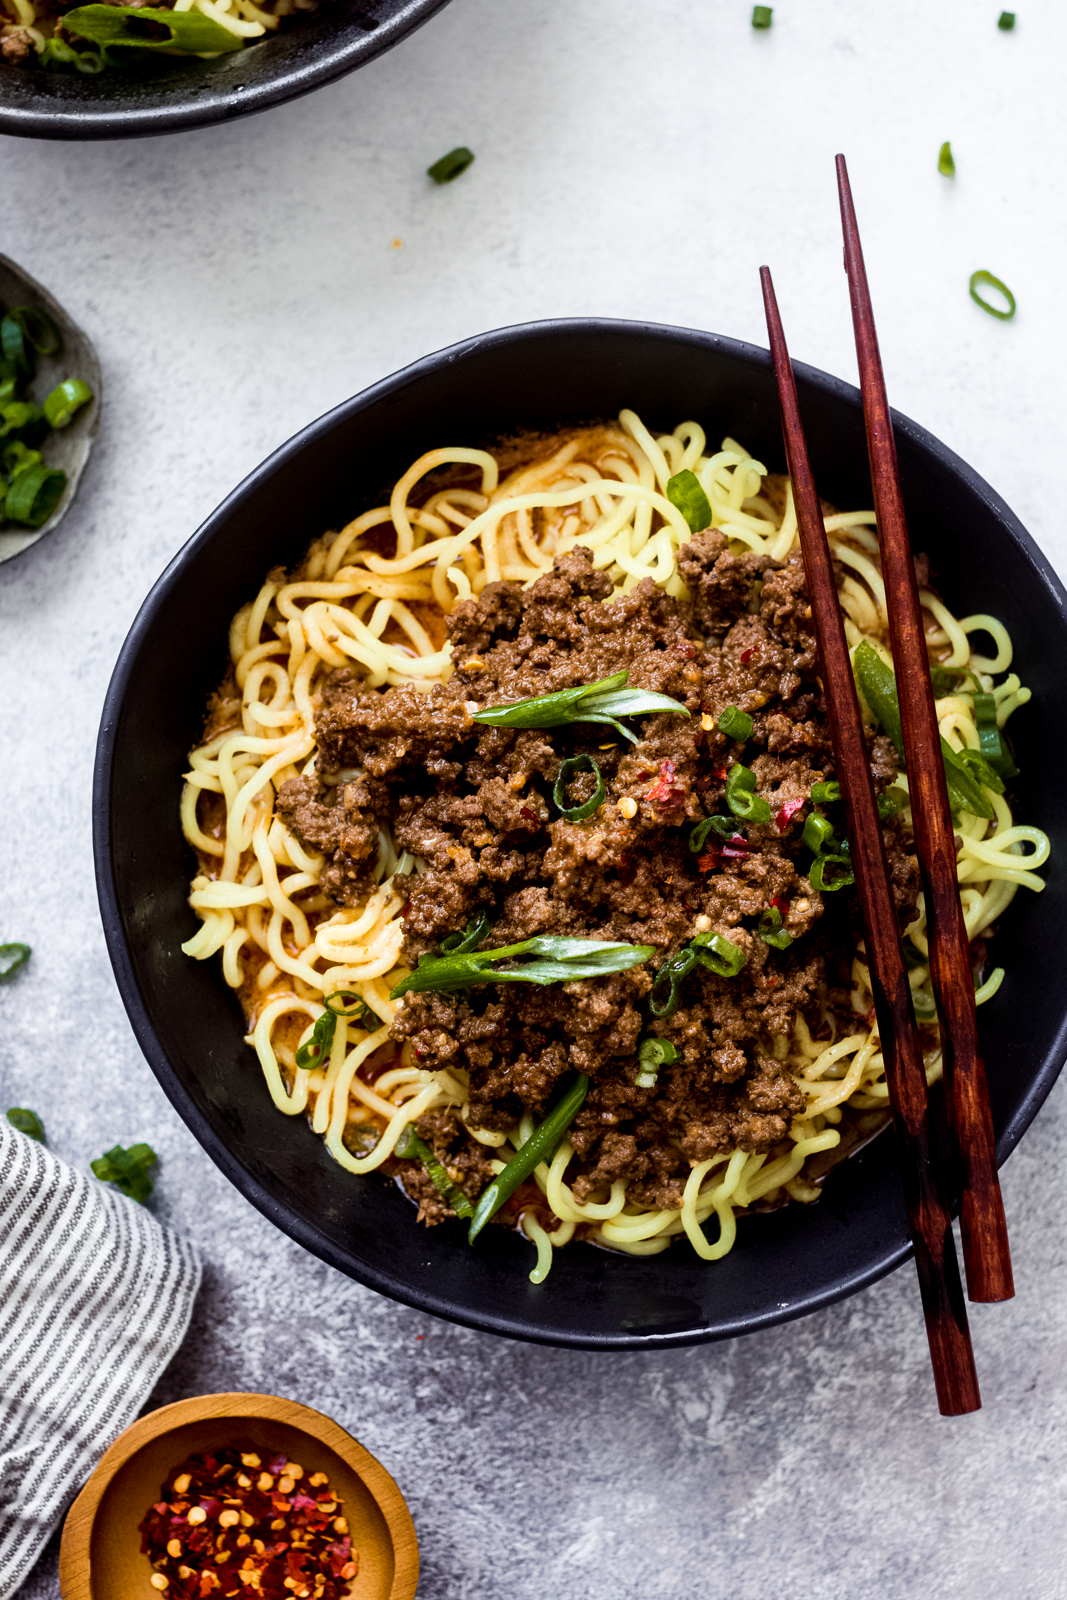 black bowl with chopsticks resting on top with noodles and meat mixture in bowl